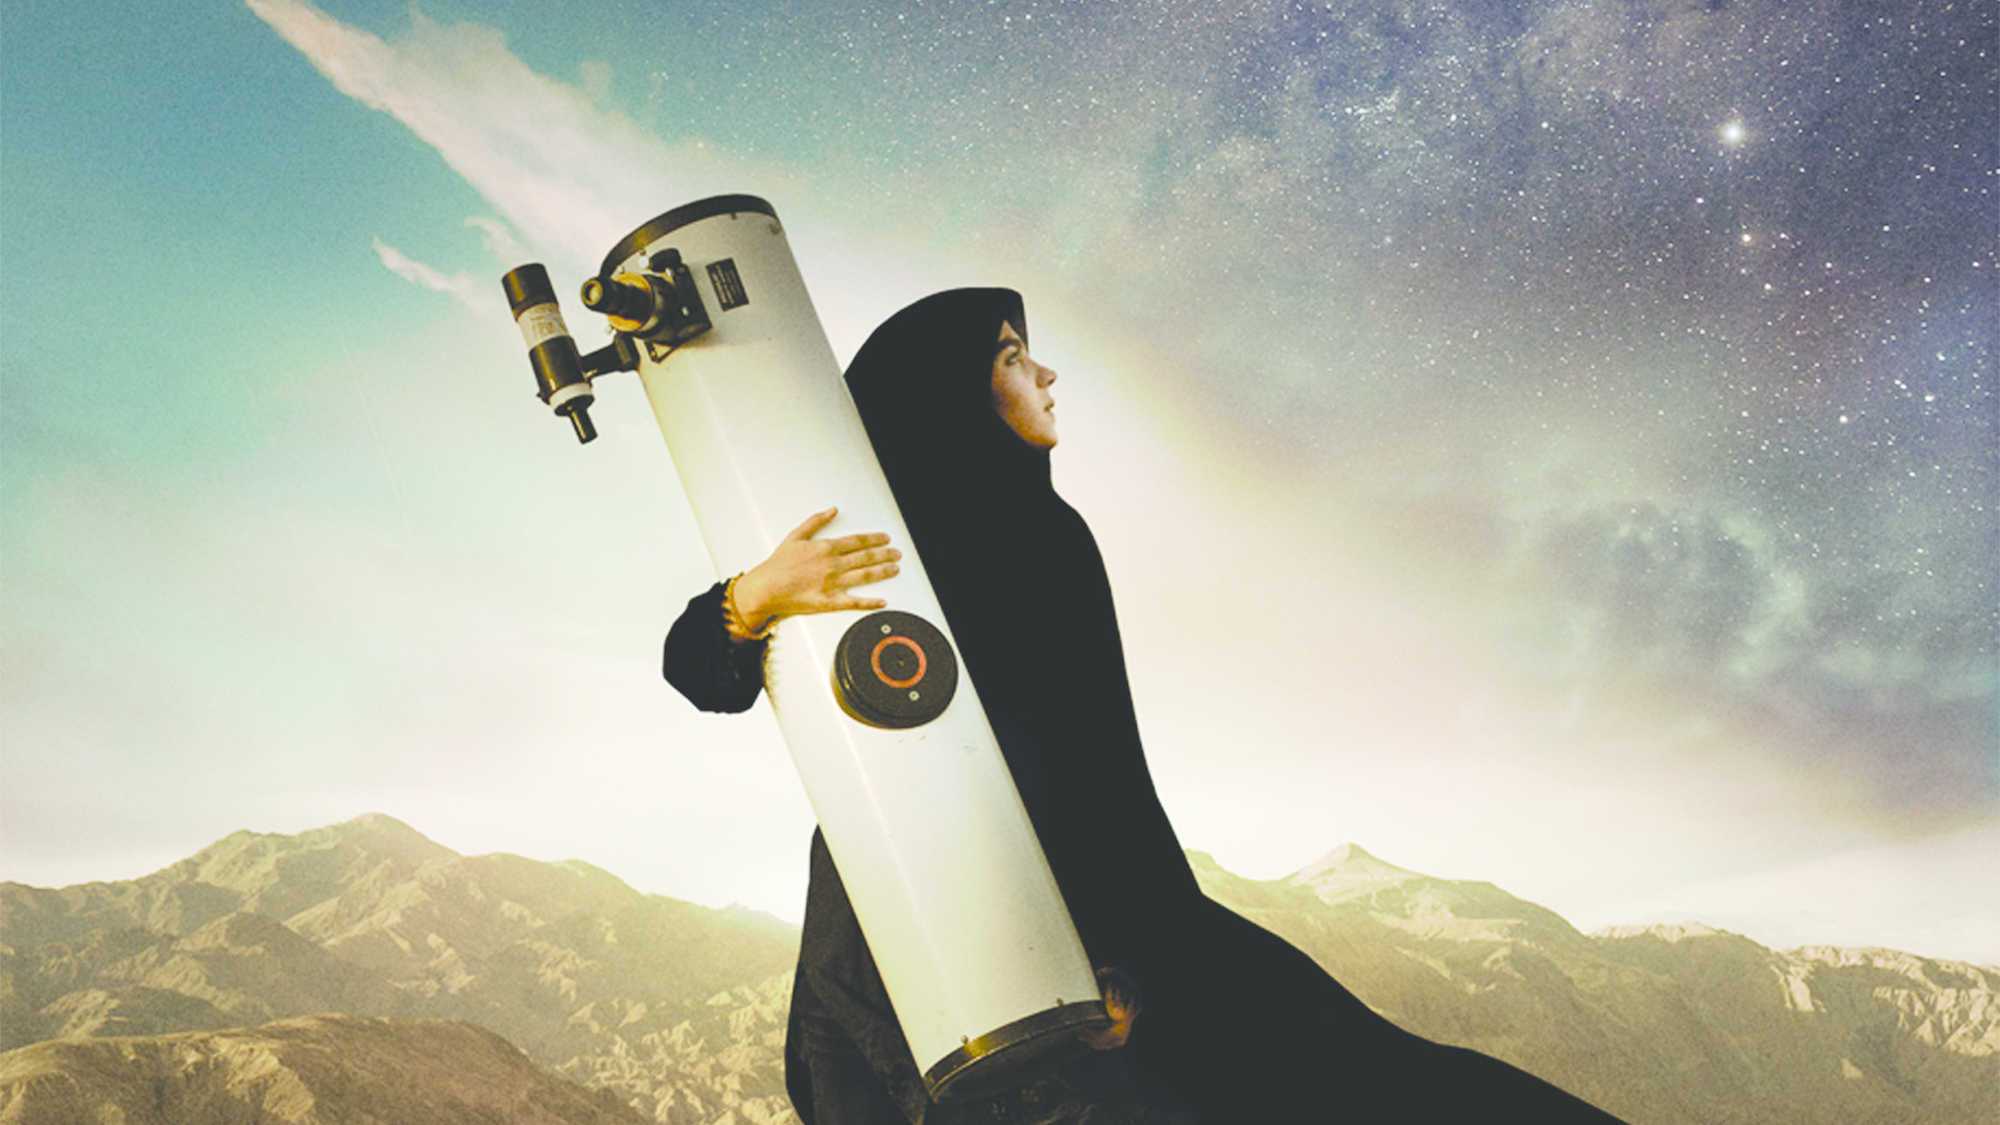 Sepideh - Reaching for the Stars (image 1)